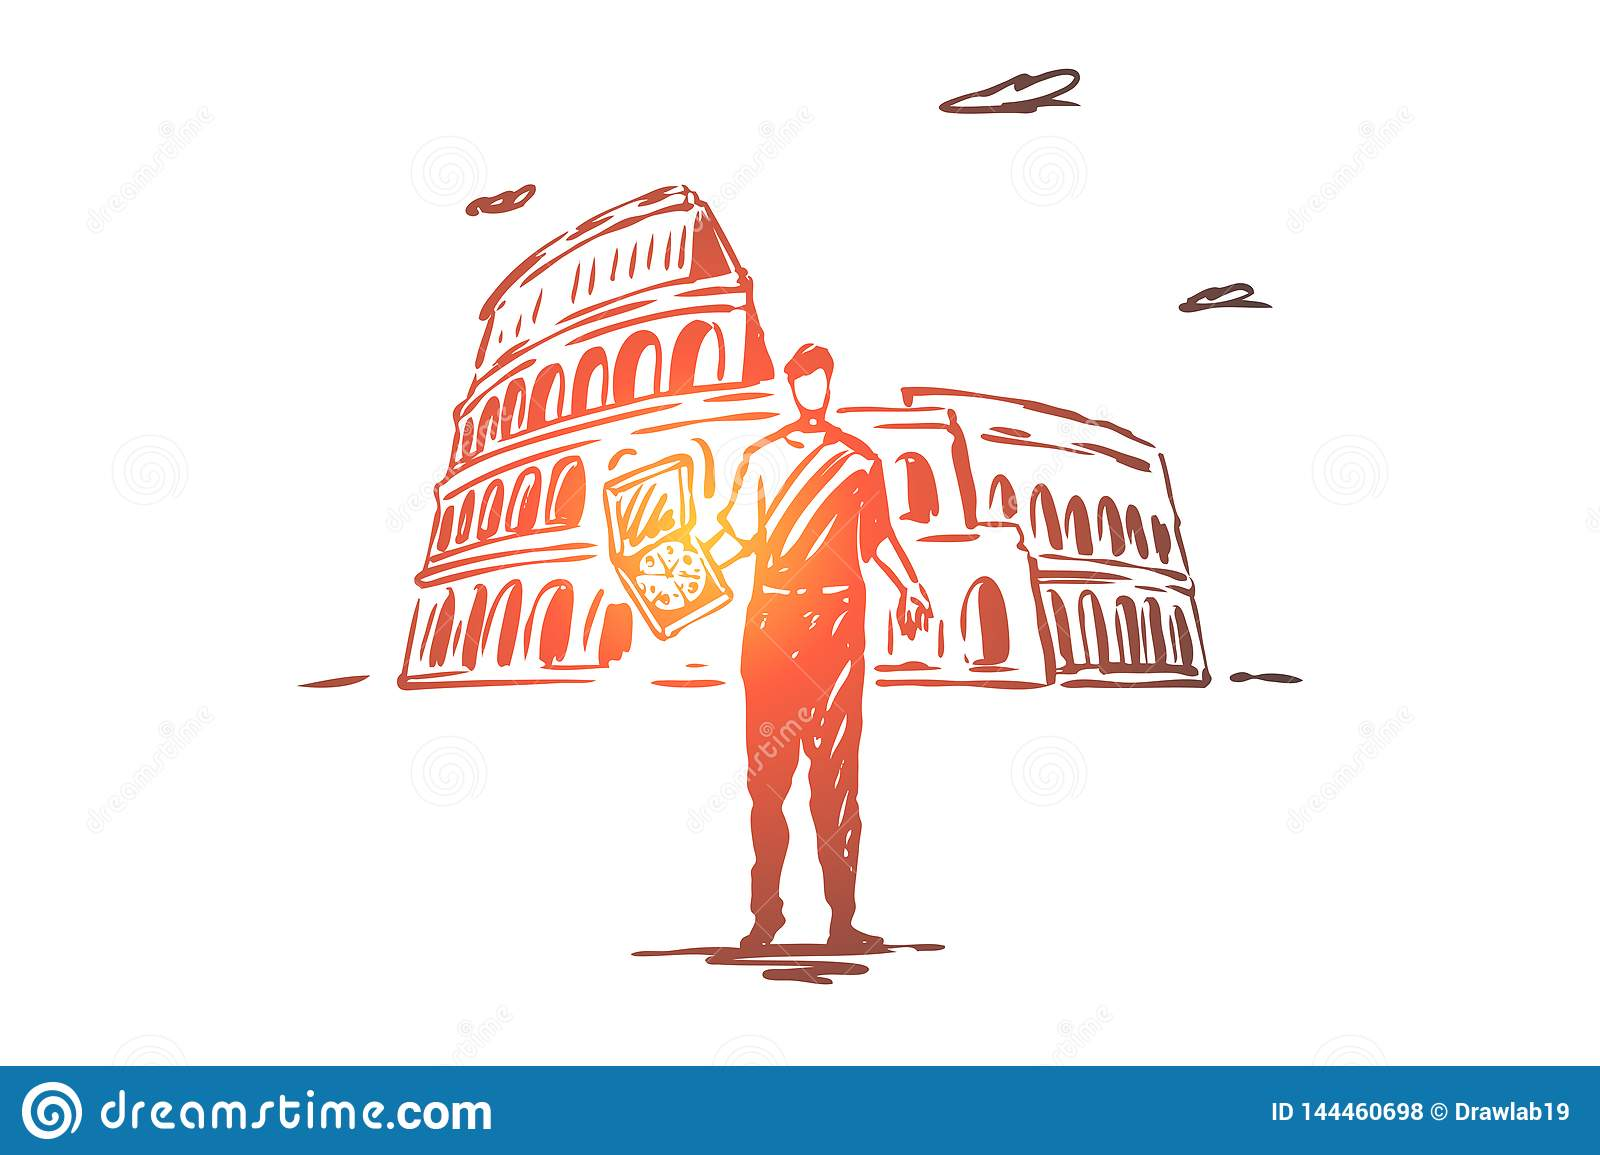 Italy Country Pizza Colosseum Rome Concept Hand Drawn